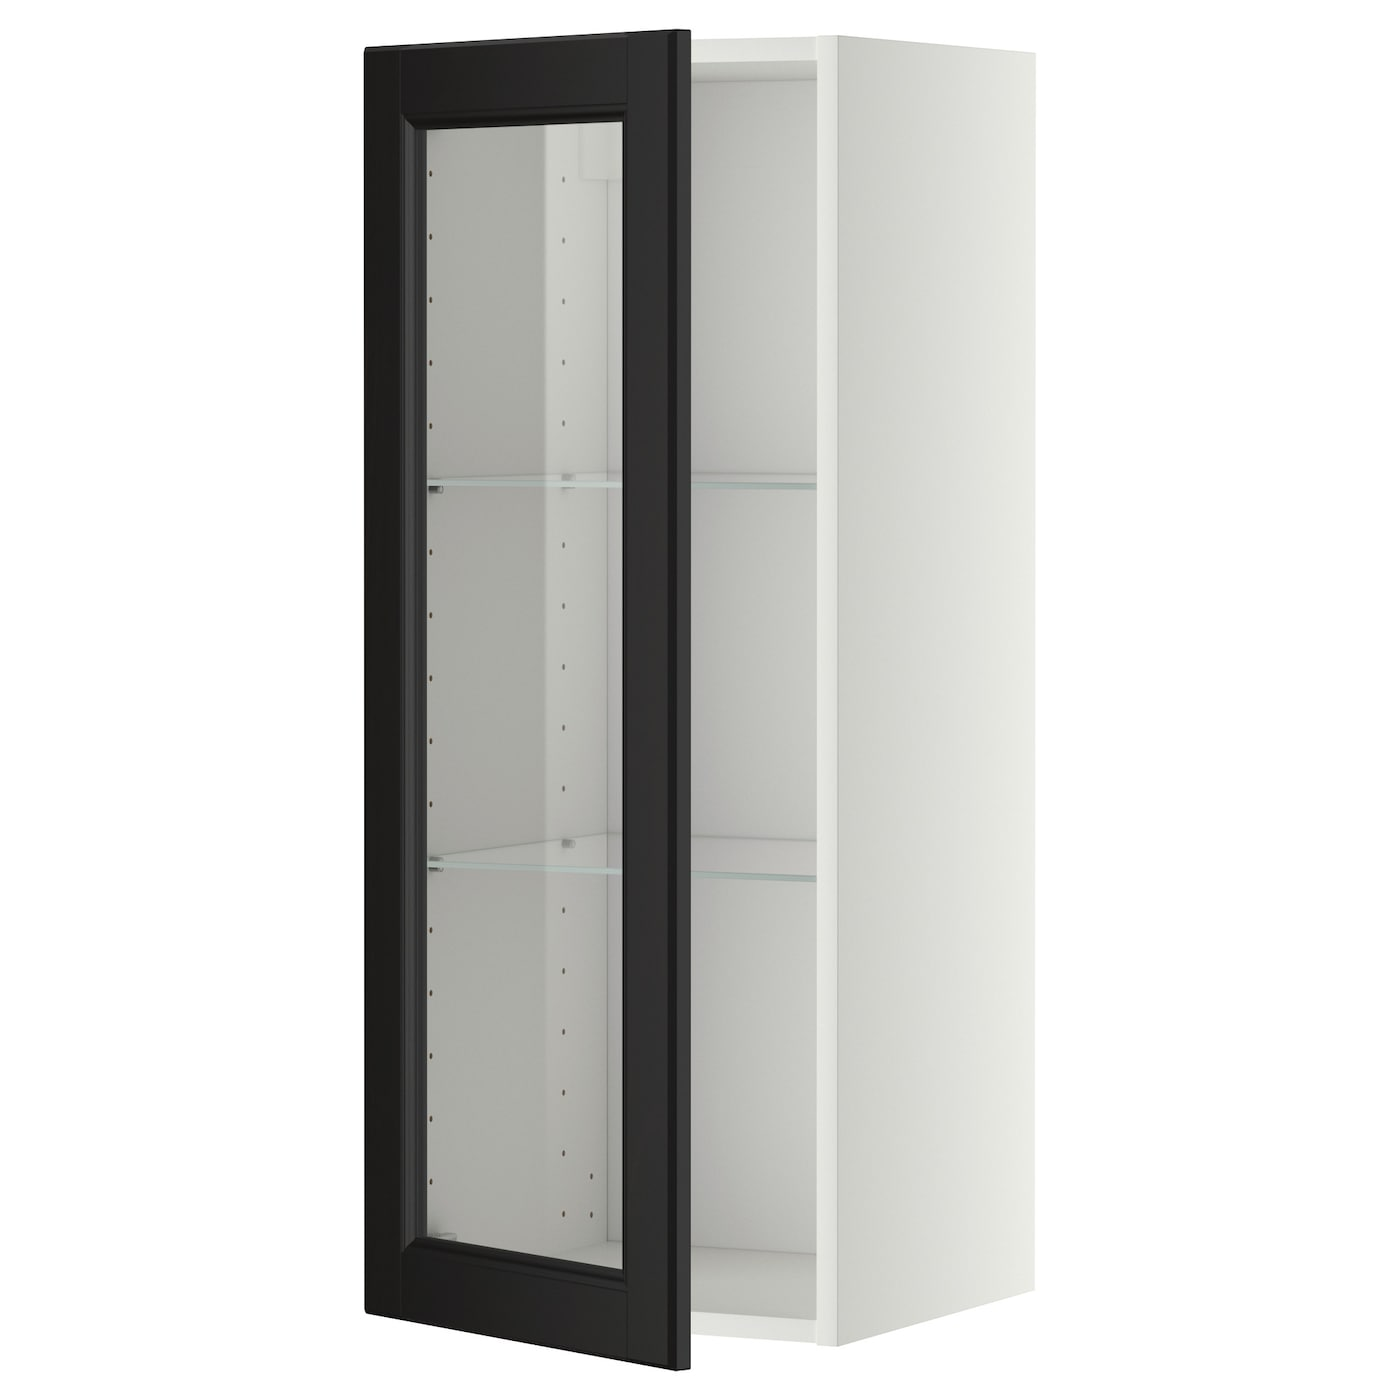 Metod wall cabinet w shelves glass door white laxarby for Ikea glass door wall cabinet